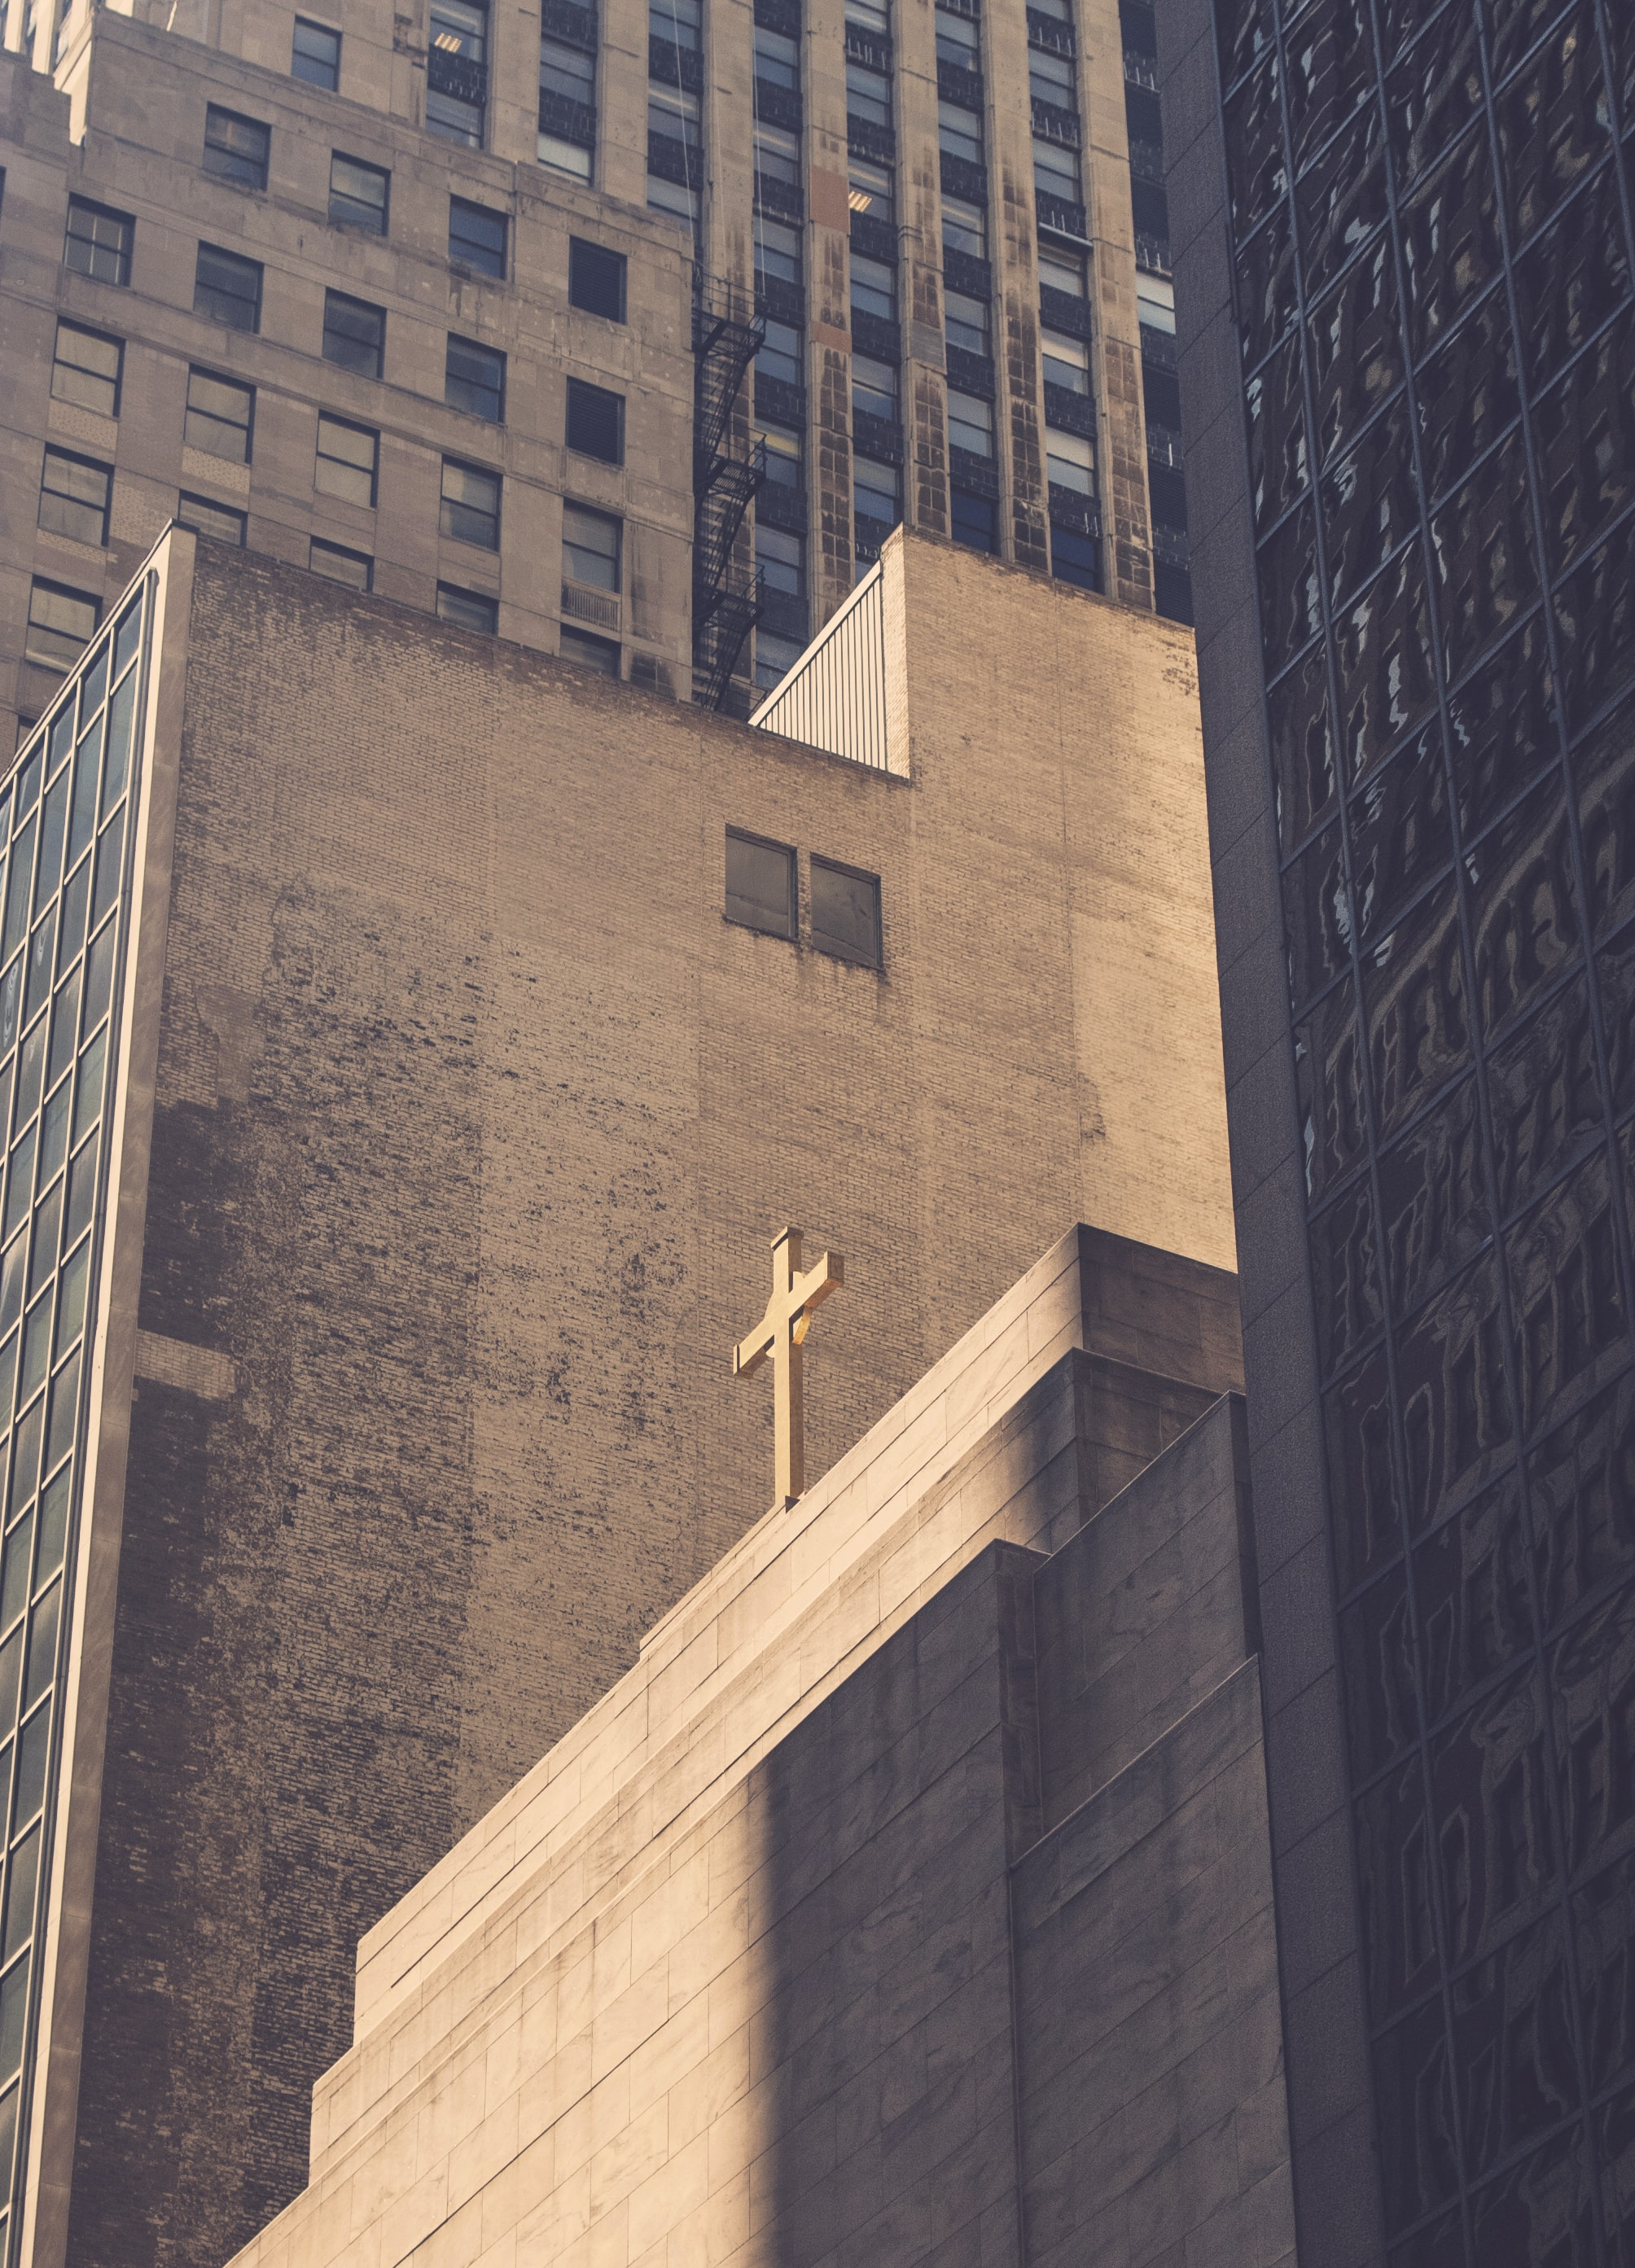 Cross on a simple concrete church building surrounded by high rise buildings